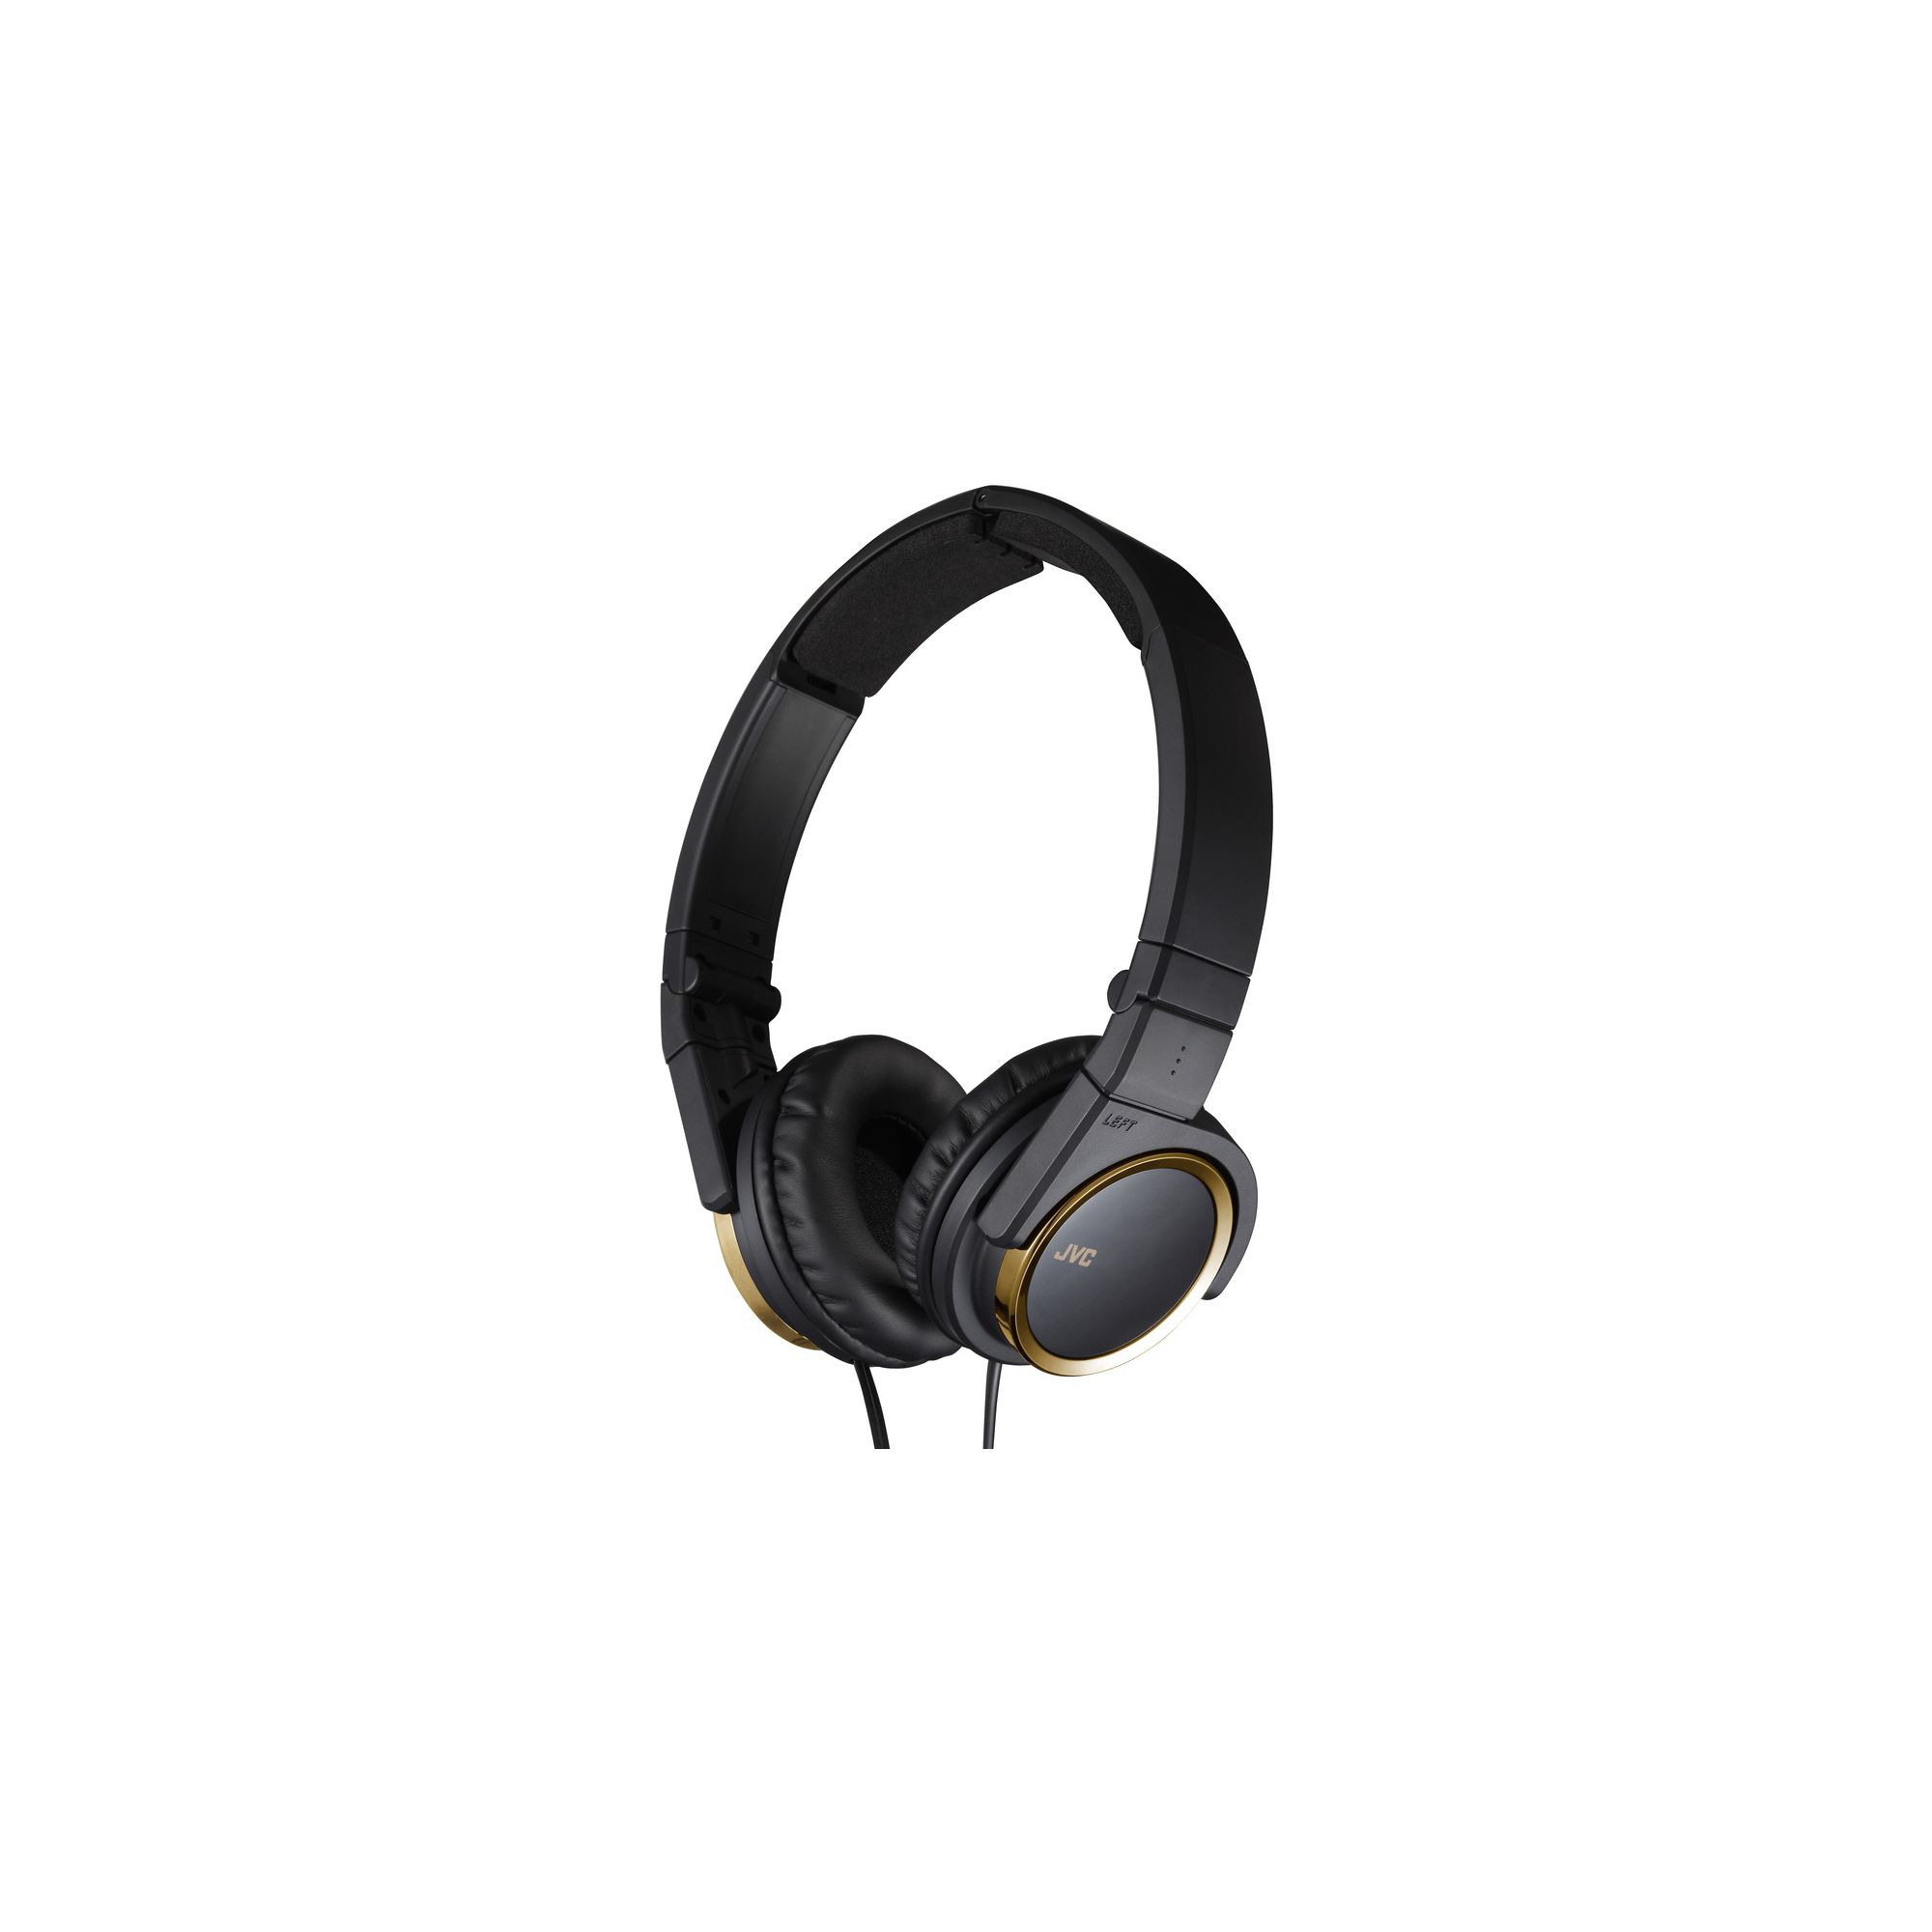 Offerta: JVC Carbon Nanotube Stereo Headphones - Gold